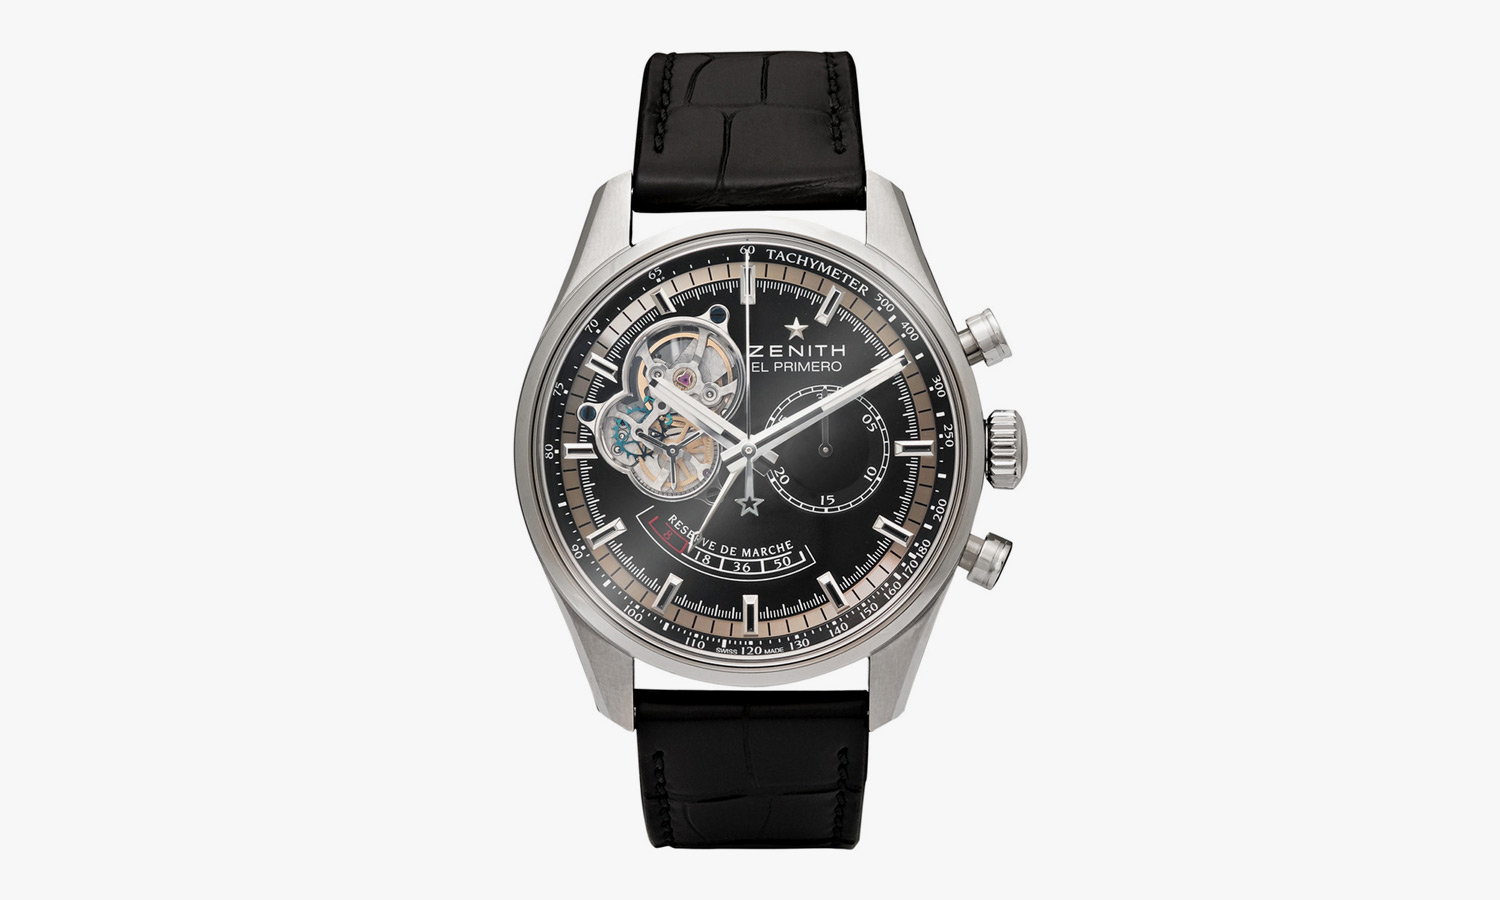 mrporter-zenith-watch-2015-feat